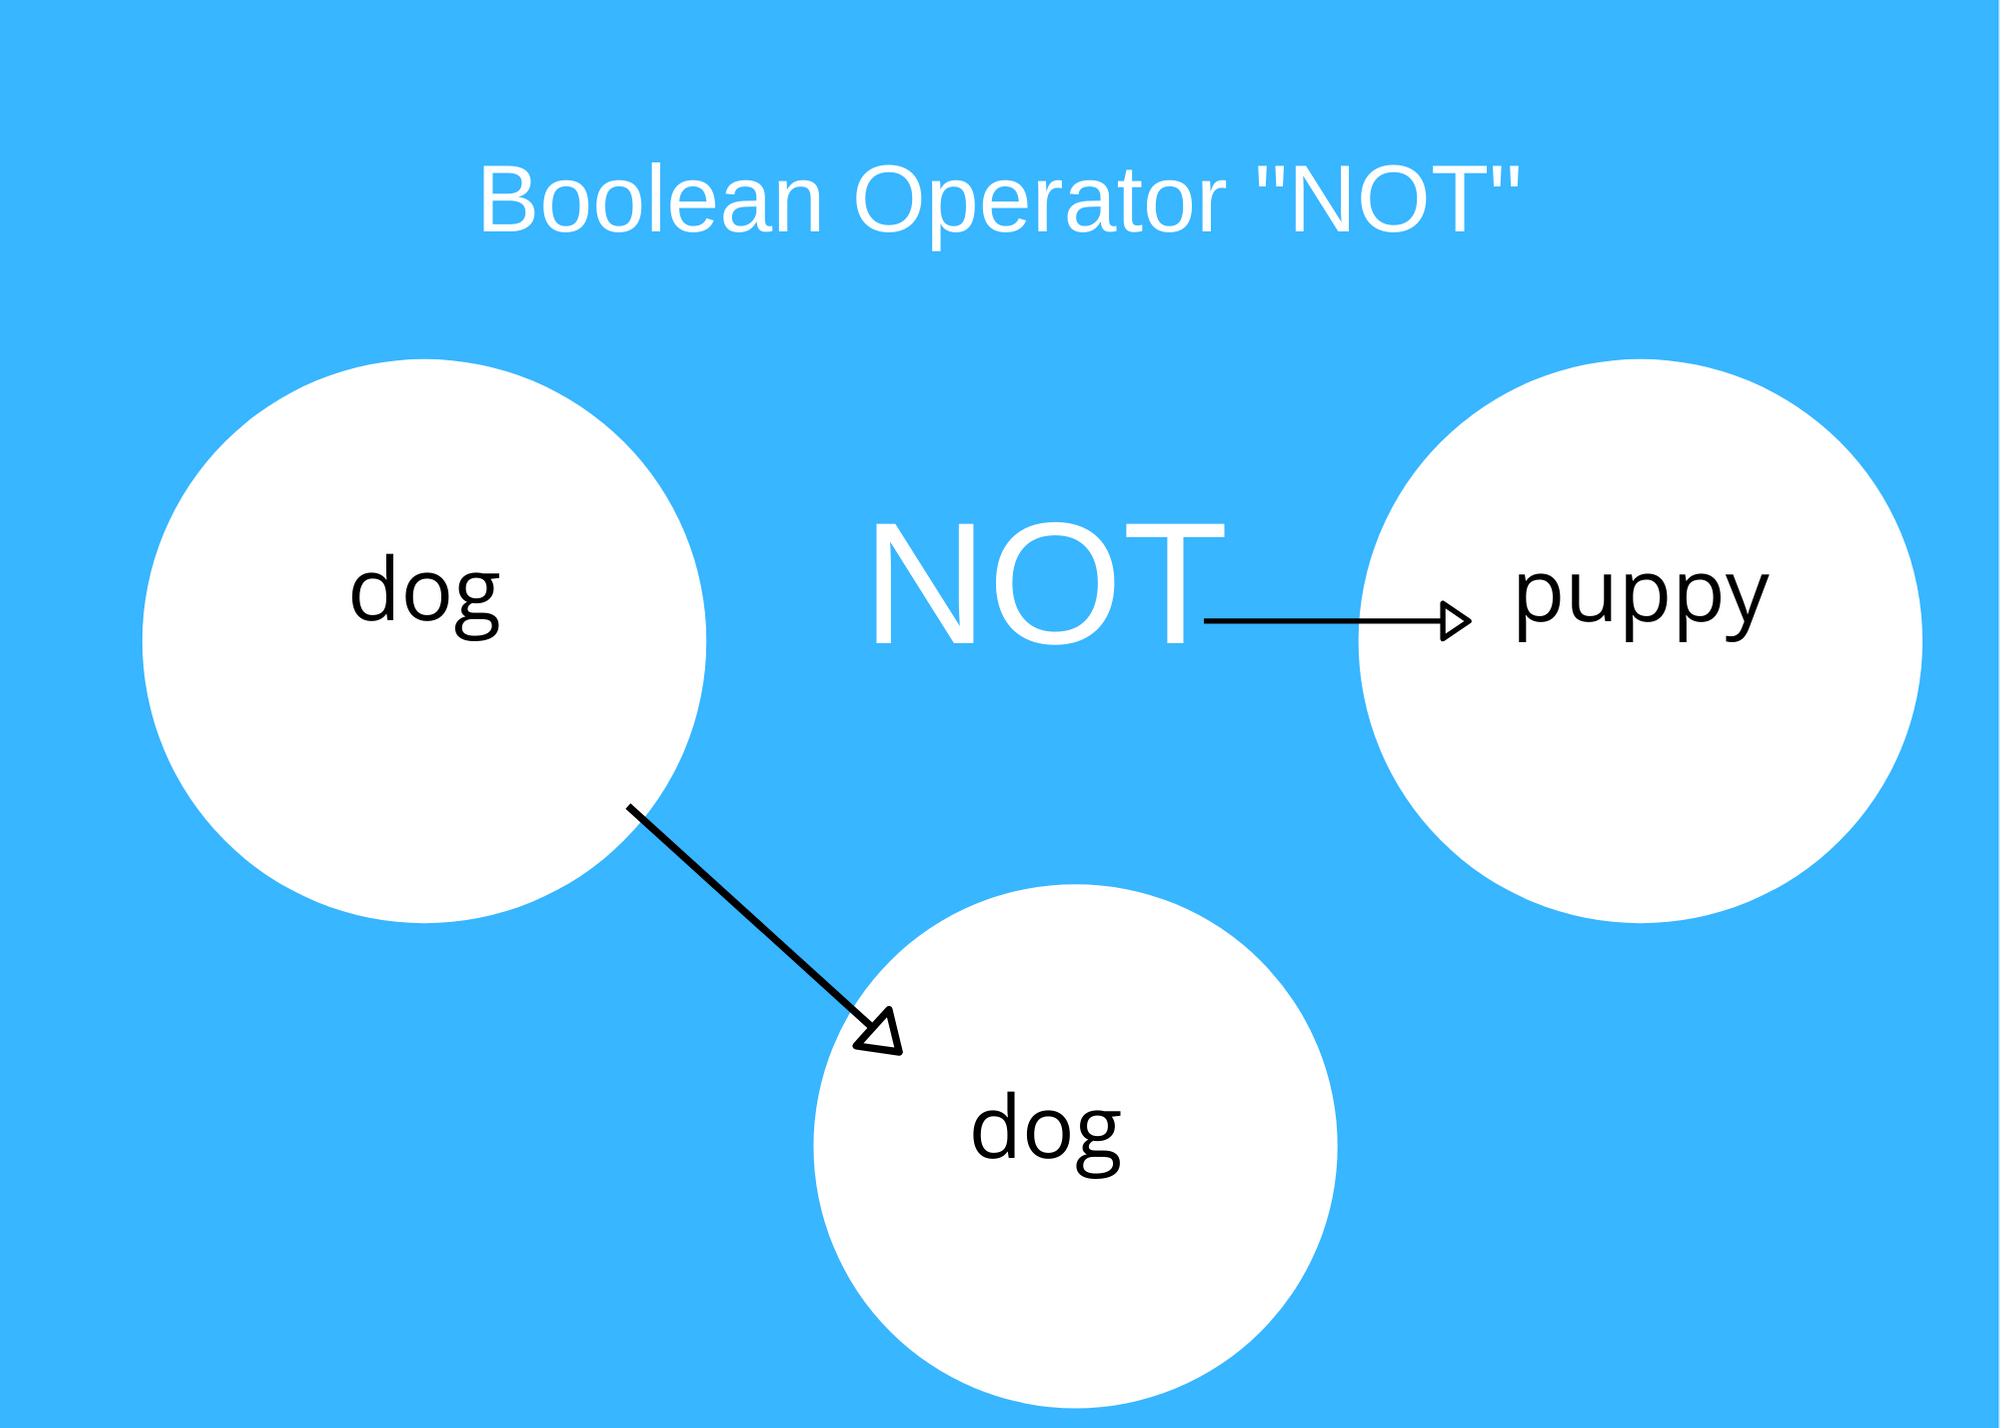 Graphic shows that if your are looking for information on dogs but nor puppies, you could use the operator NOT to exclude the term puppy